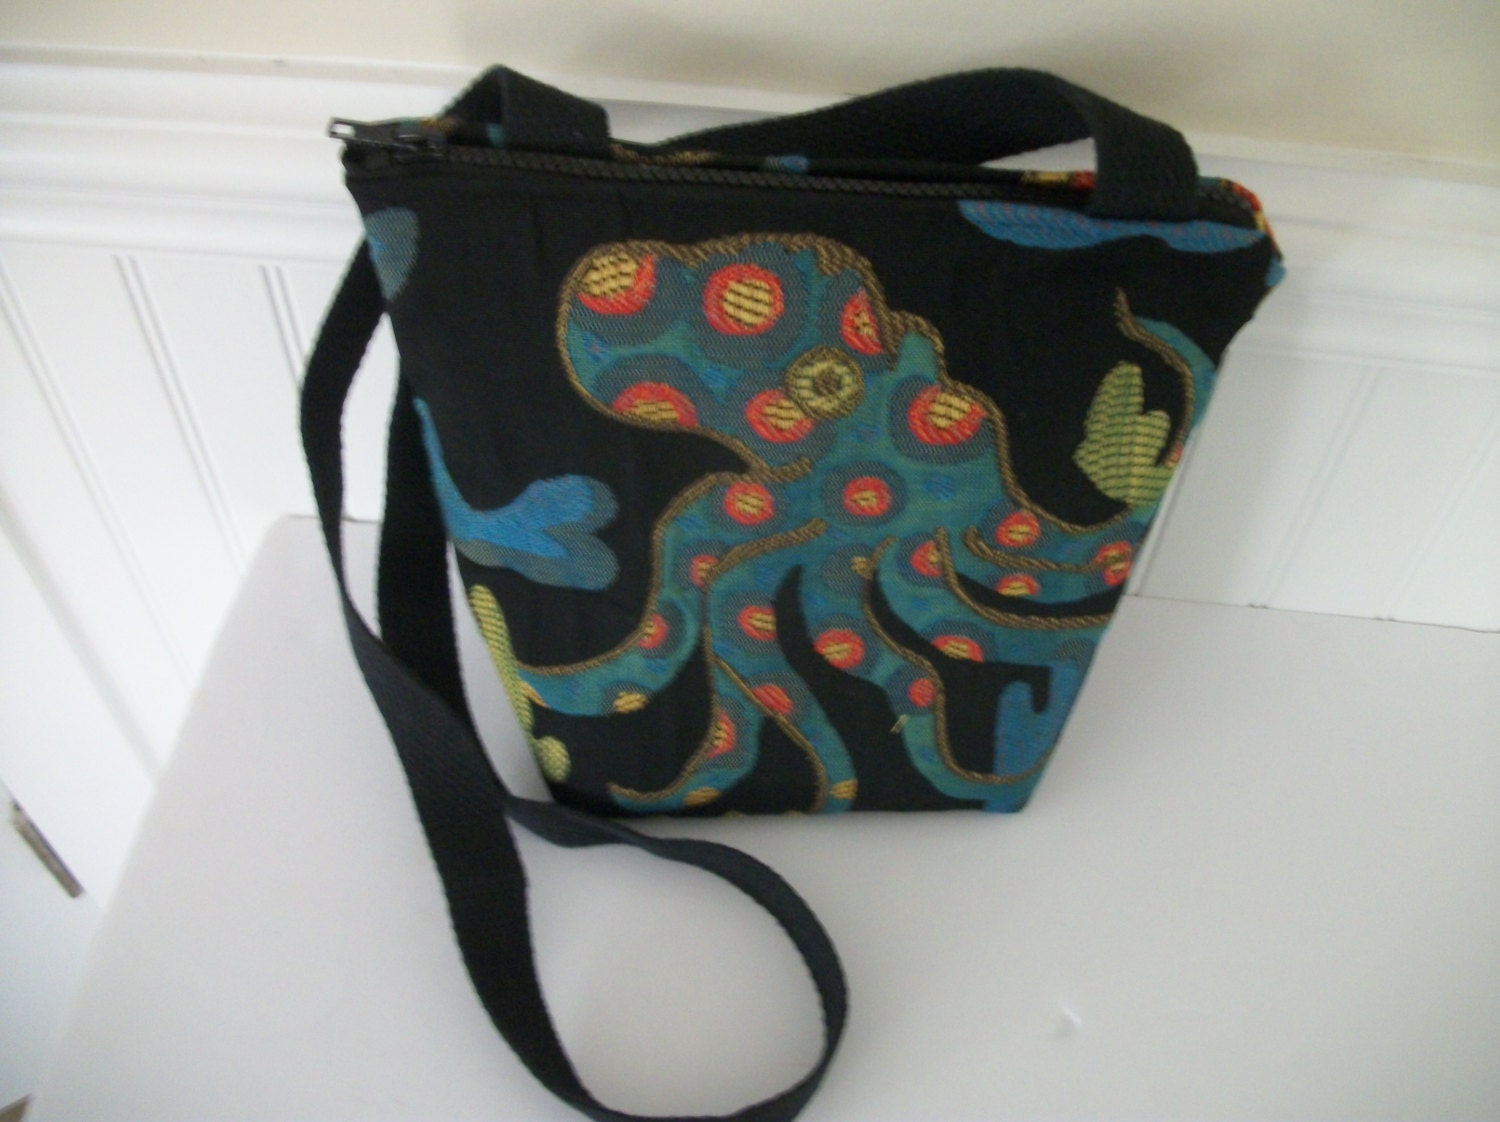 Octopus Upholostery Fabric Black Bag 1a93372eaa583